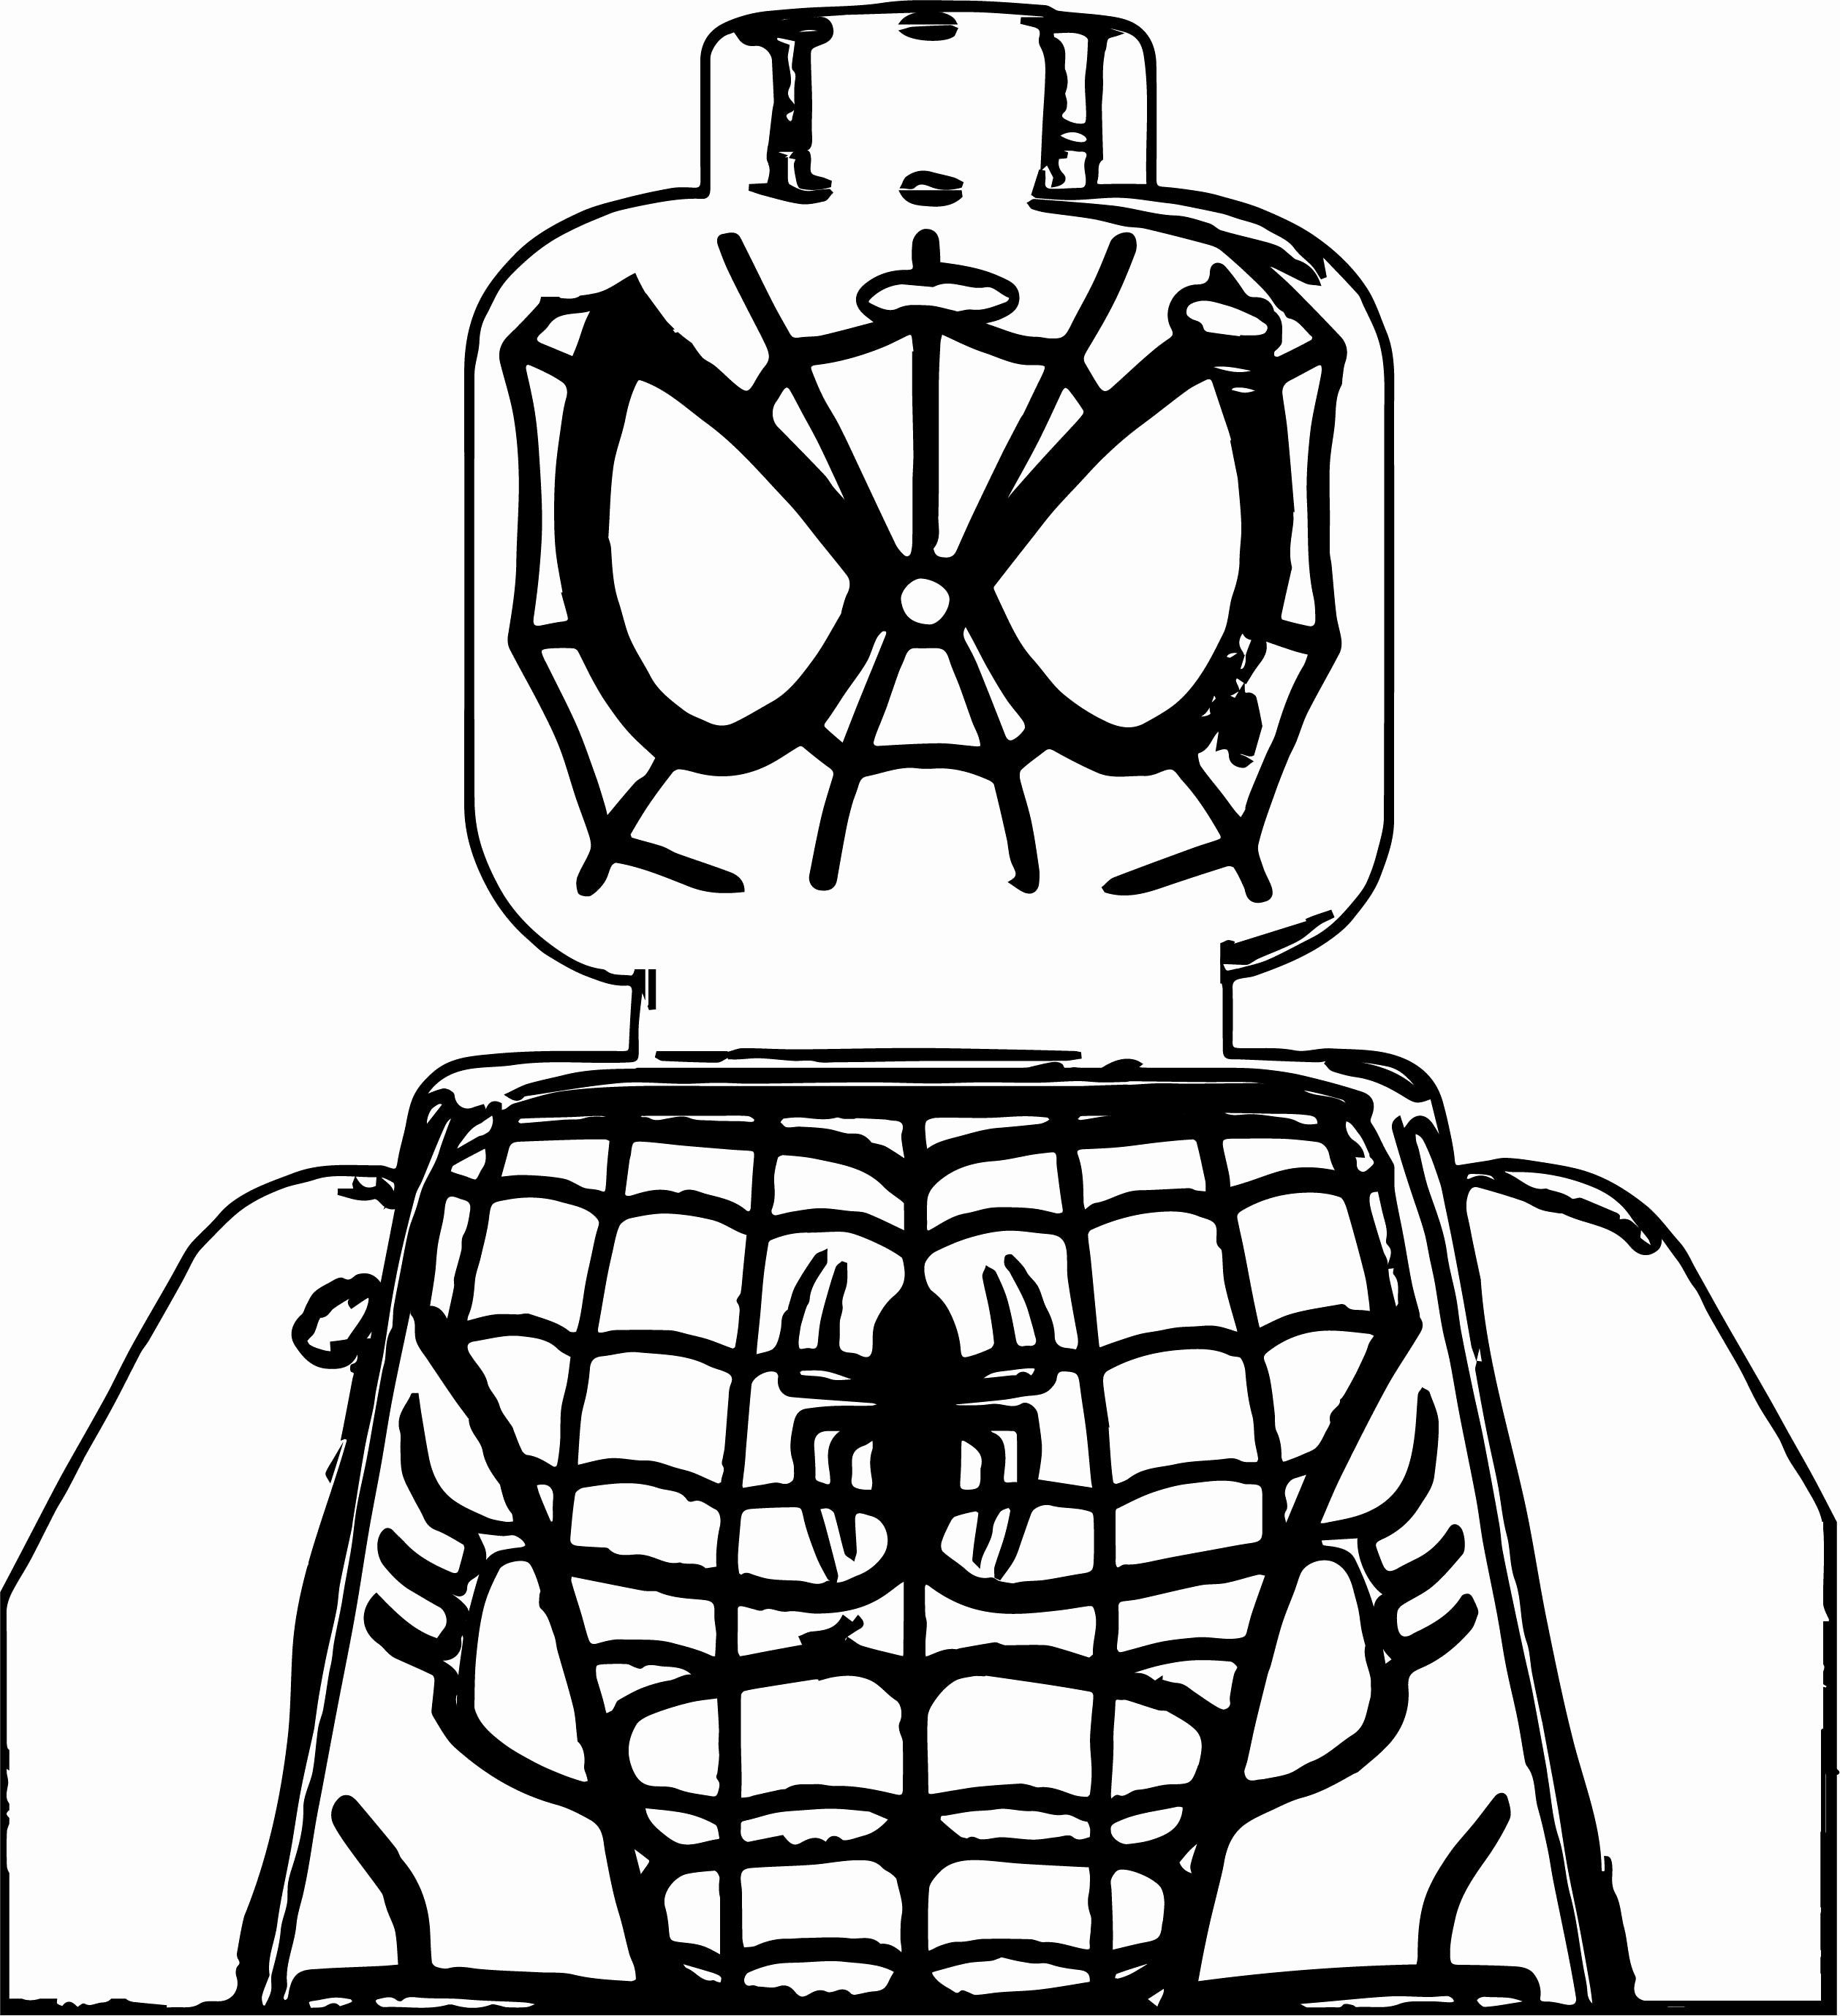 Lego Spiderman Coloring Page Lovely Lego Spider Man Coloring Page